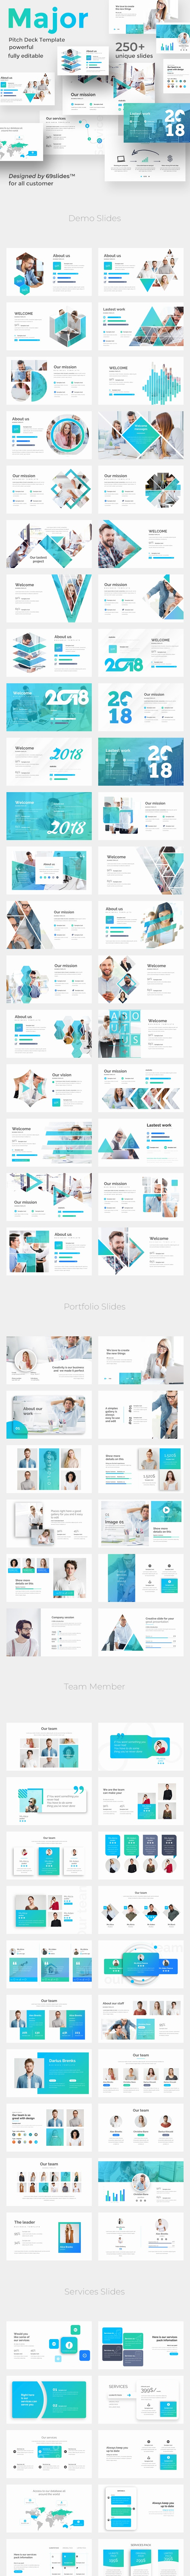 Major Business Pitch Deck Powerpoint Template - Business PowerPoint Templates